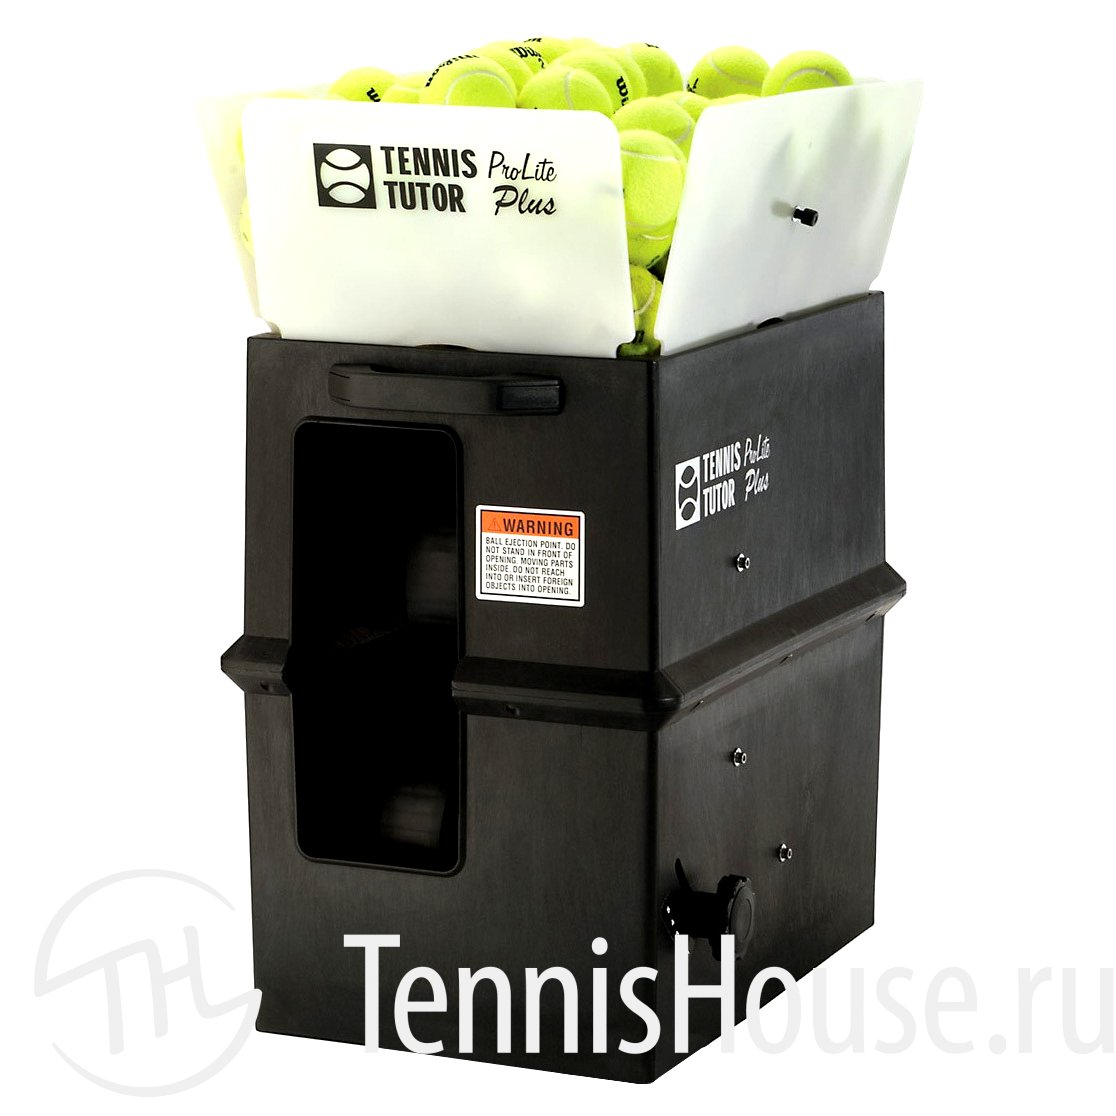 Теннисная пушка Tennis Tutor ProLite Plus, батарея 34002